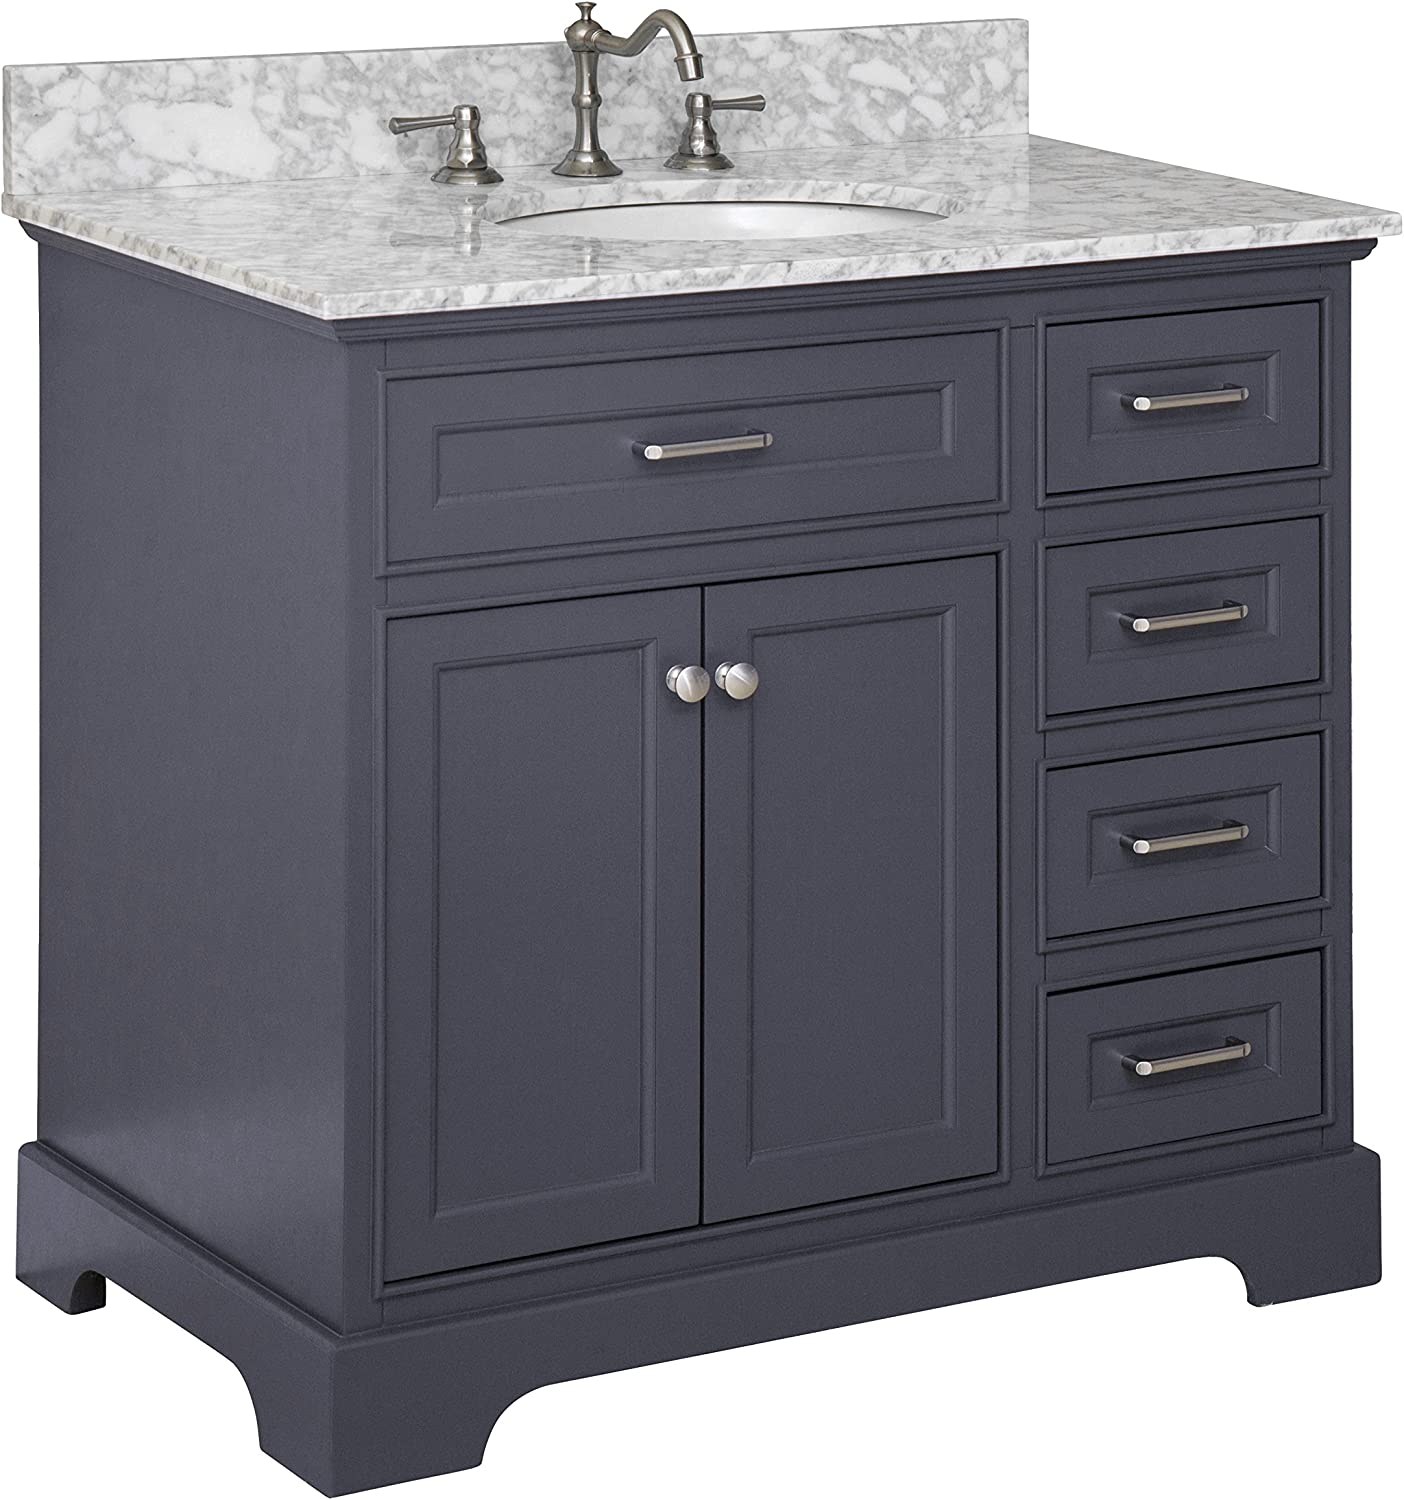 Aria 36 Inch Bathroom Vanity Carrara Charcoal Gray Includes Charcoal Gray Cabinet With Authentic Italian Carrara Marble Countertop And White Ceramic Sink Home Improvement Amazon Com